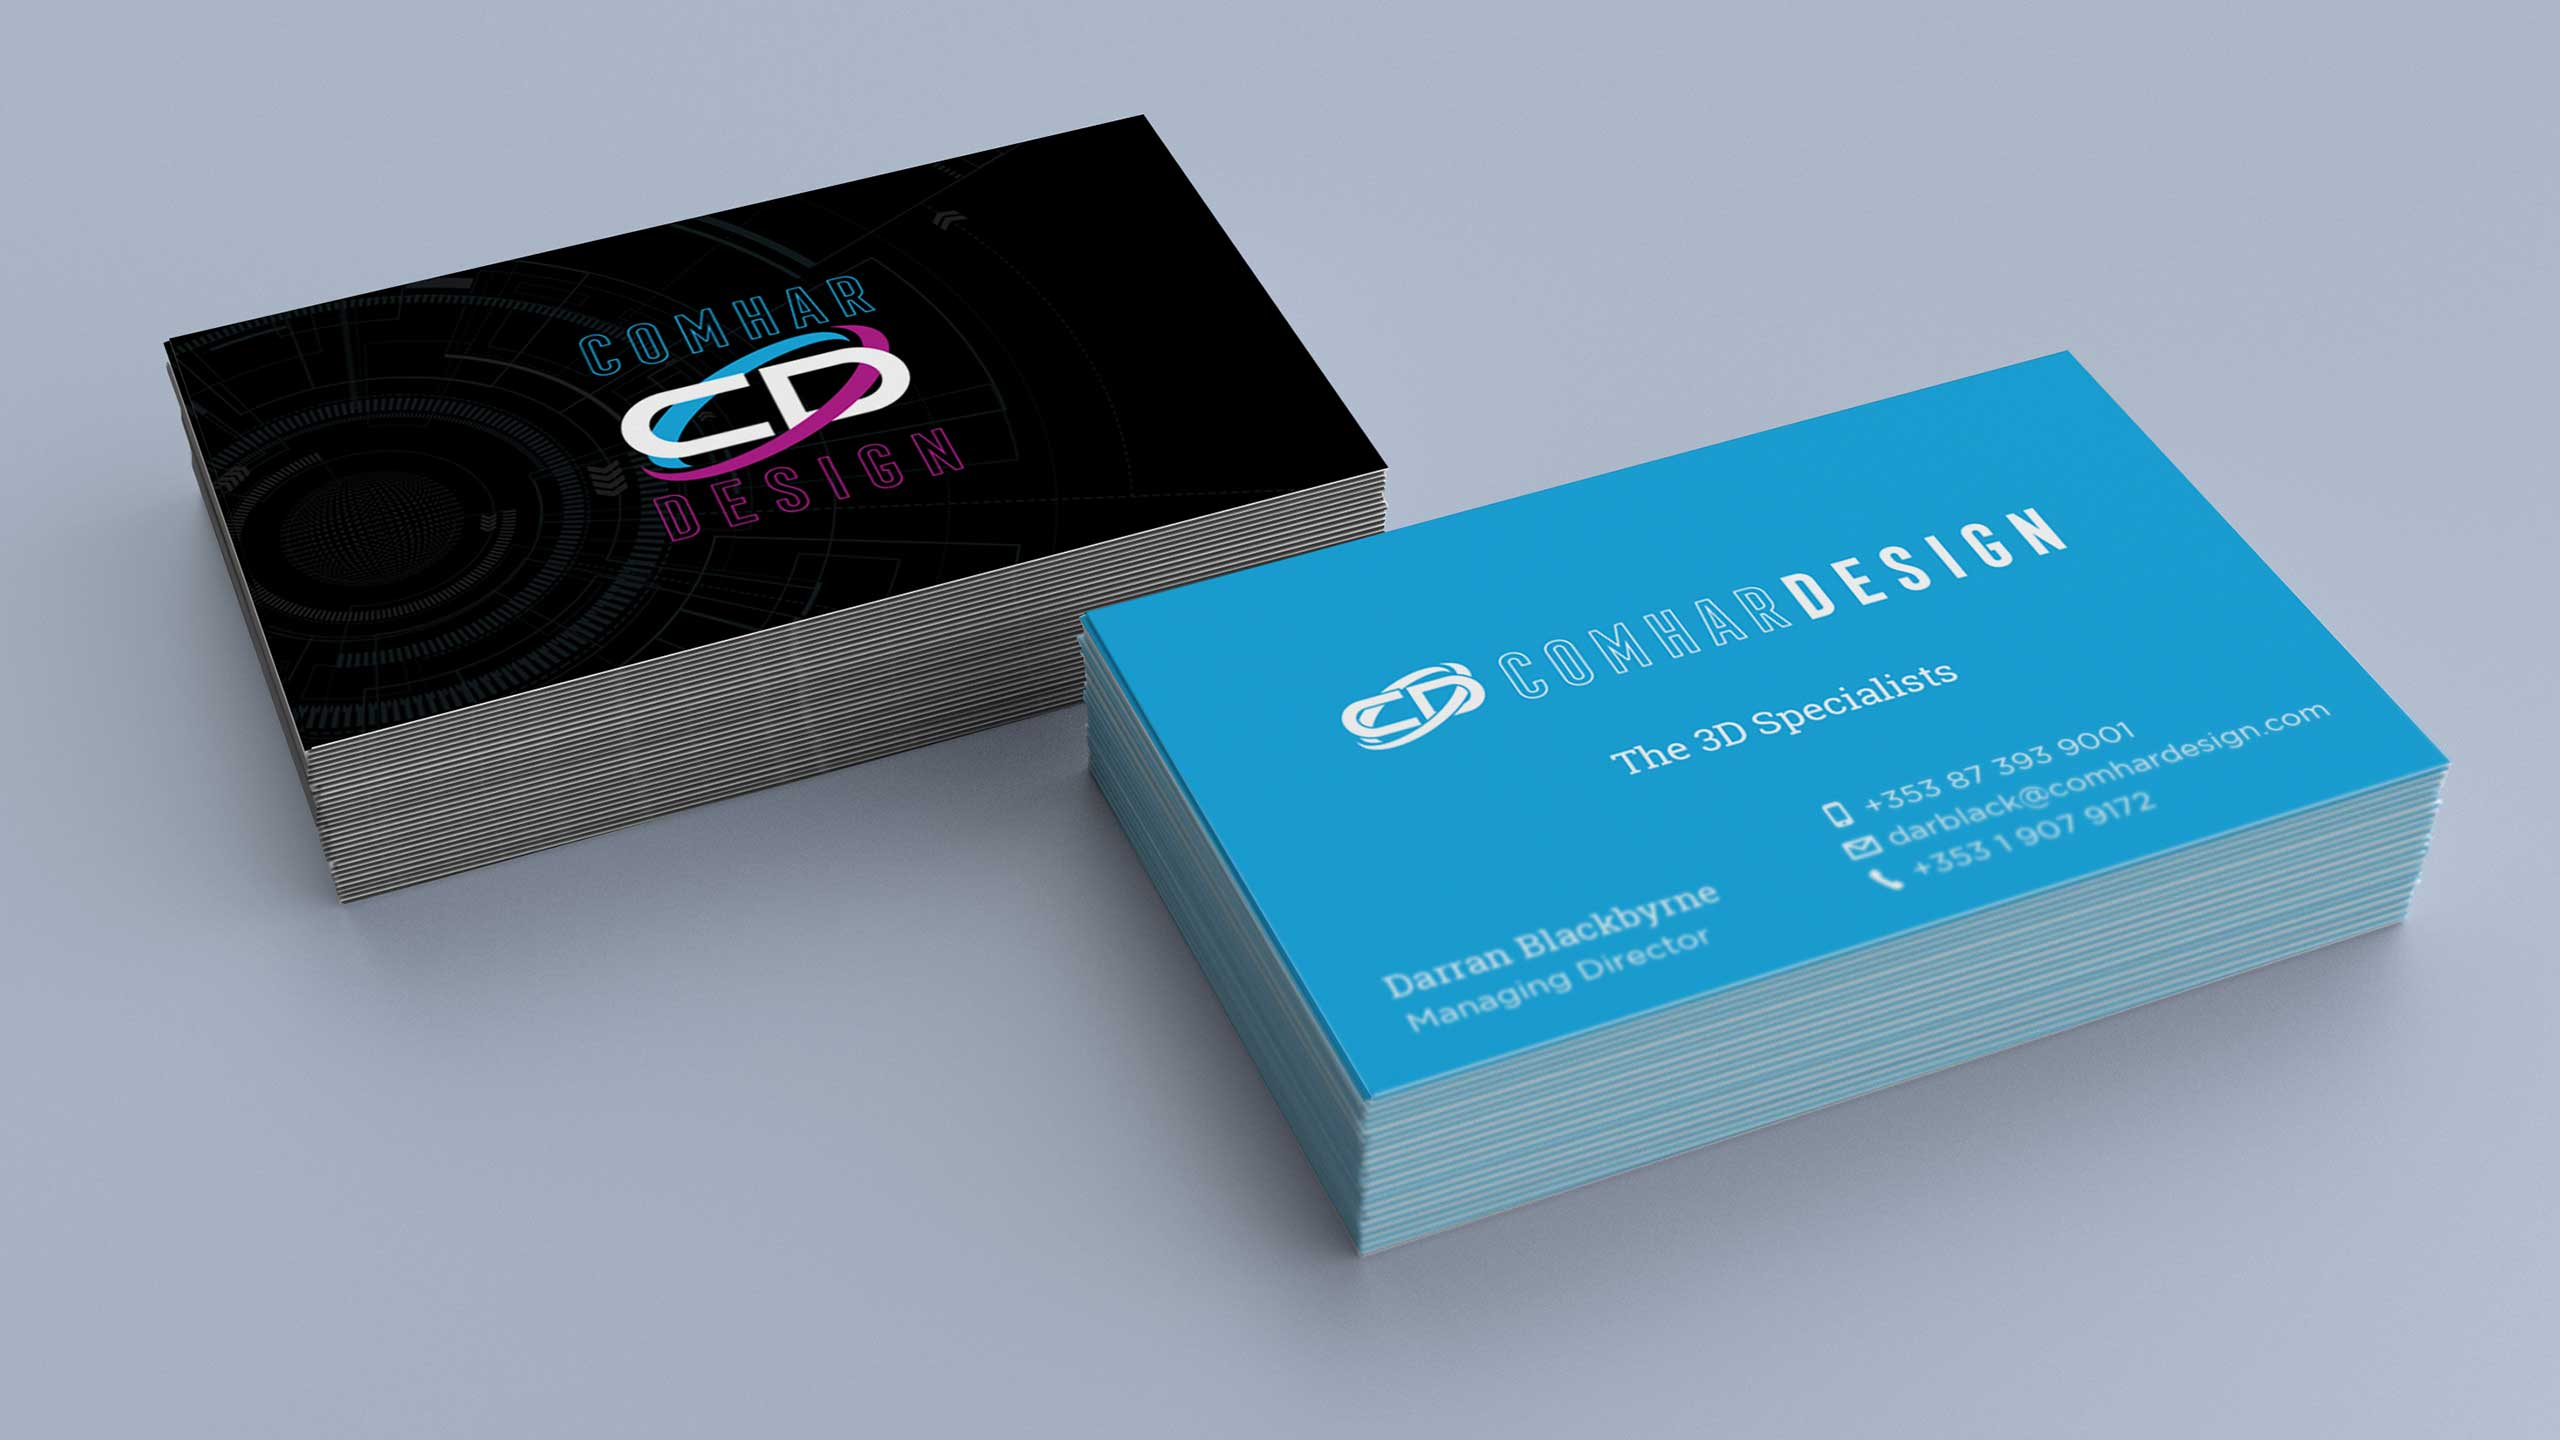 Comhar Design Business Cards